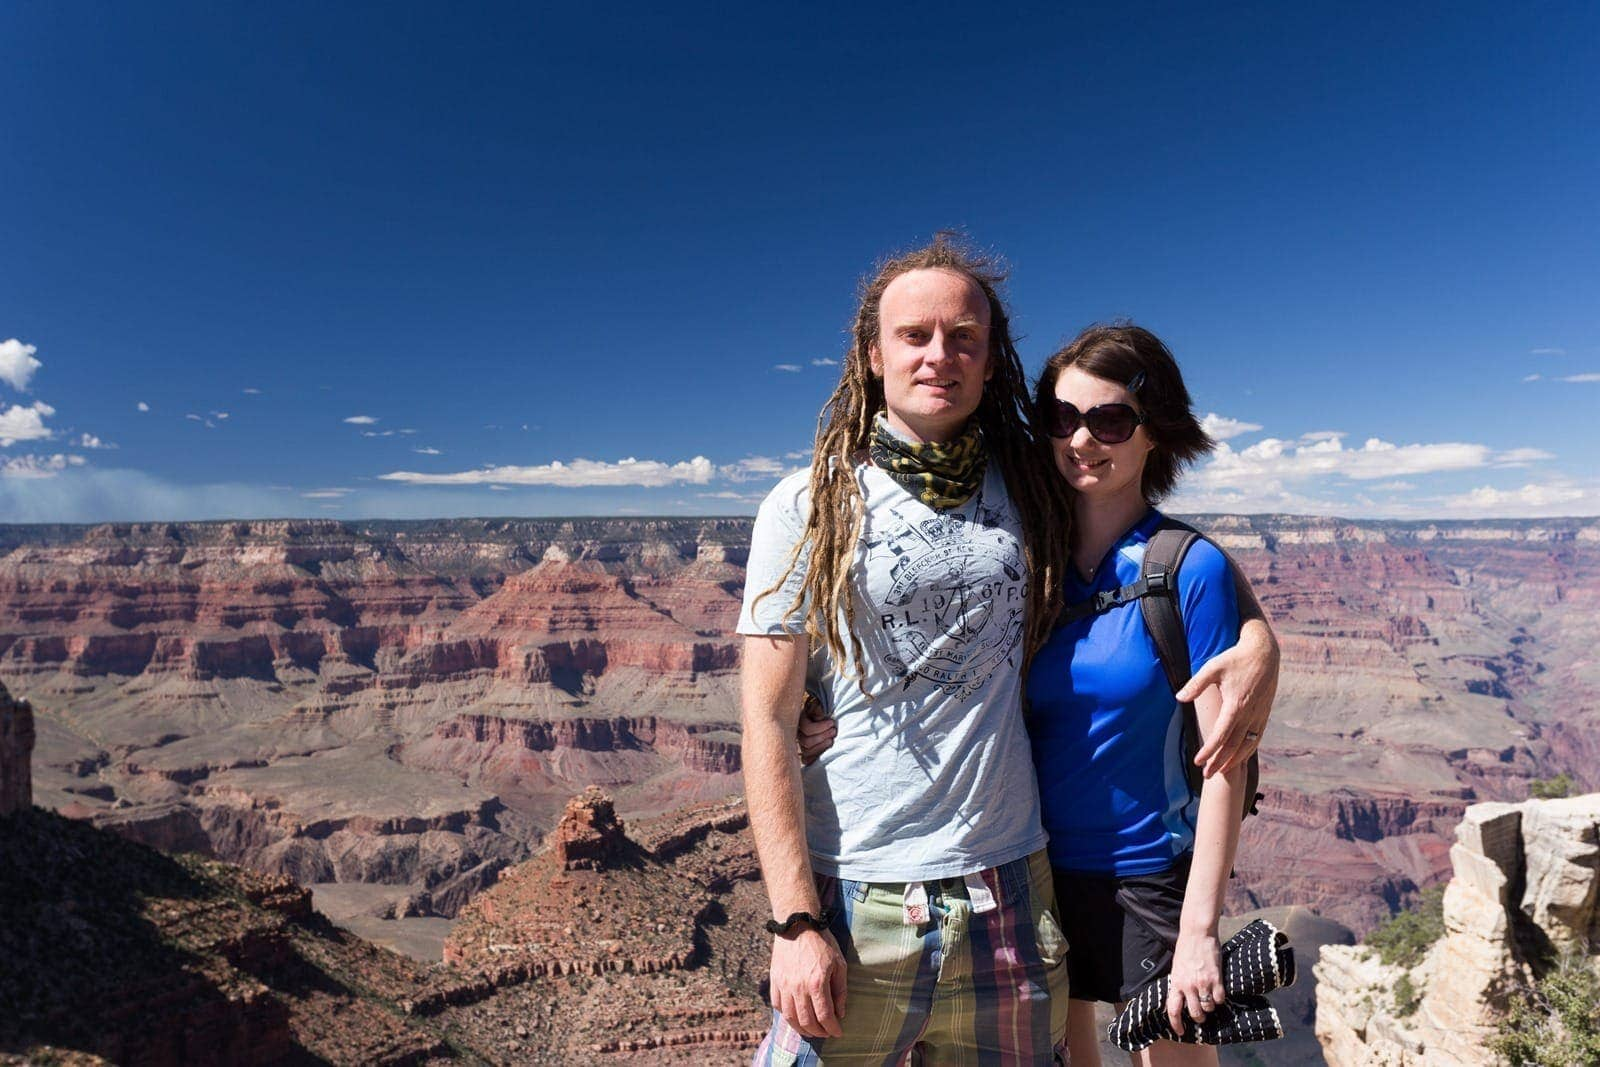 Laurence and Jess at Grand Canyon